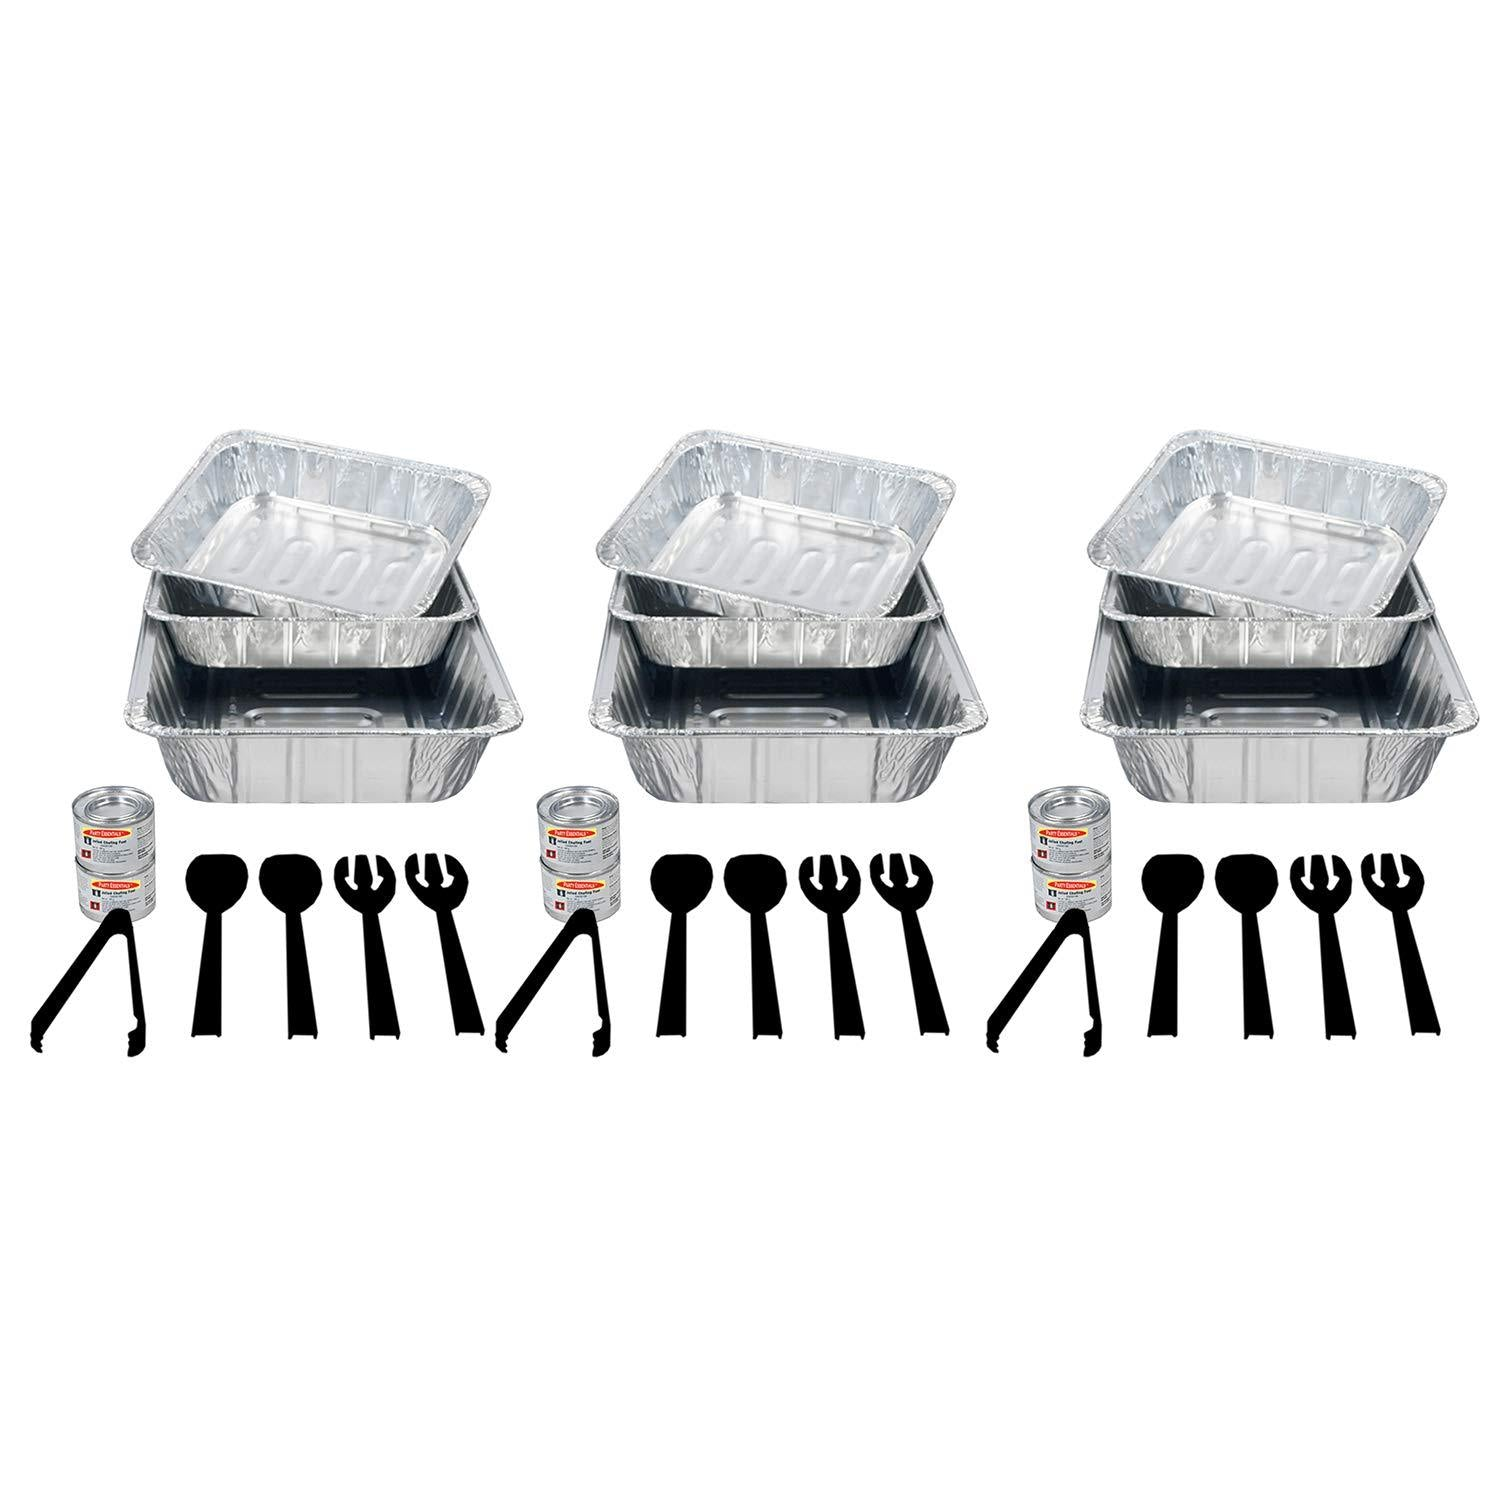 Classier: Buy Party Essentials Party Essentials 30 Piece Party Serving Refill Kit, Includes Aluminum pans, Methanol Fuel and Serving Utensils (Racks are NOT included) (N30)